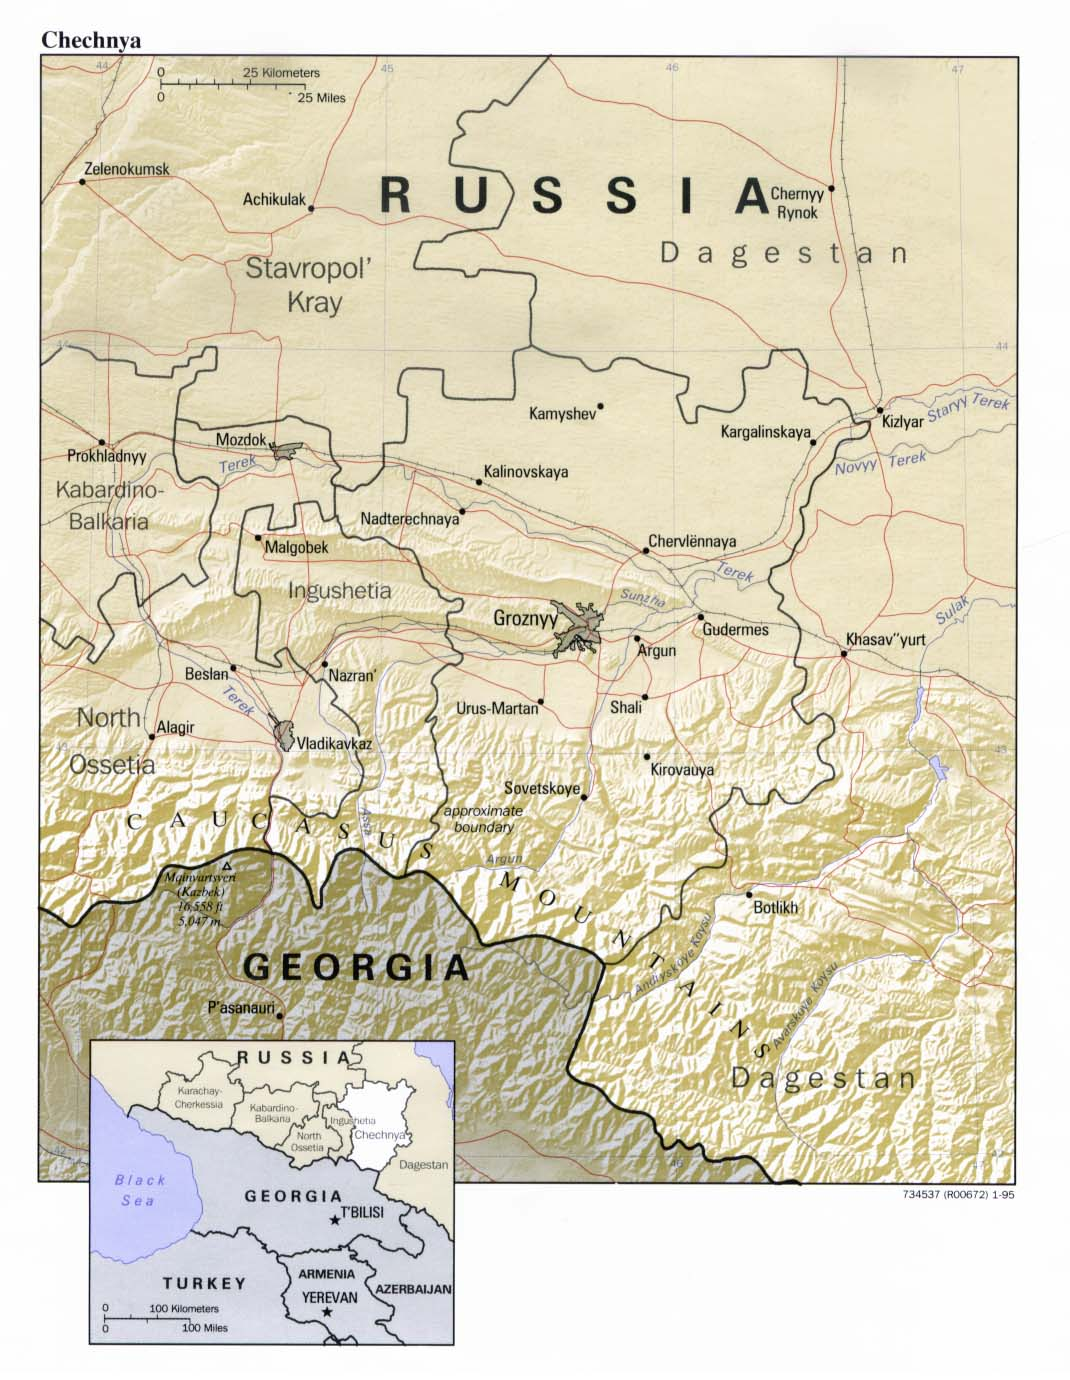 Chechnya Mapa de Relieve, Russia 1995.